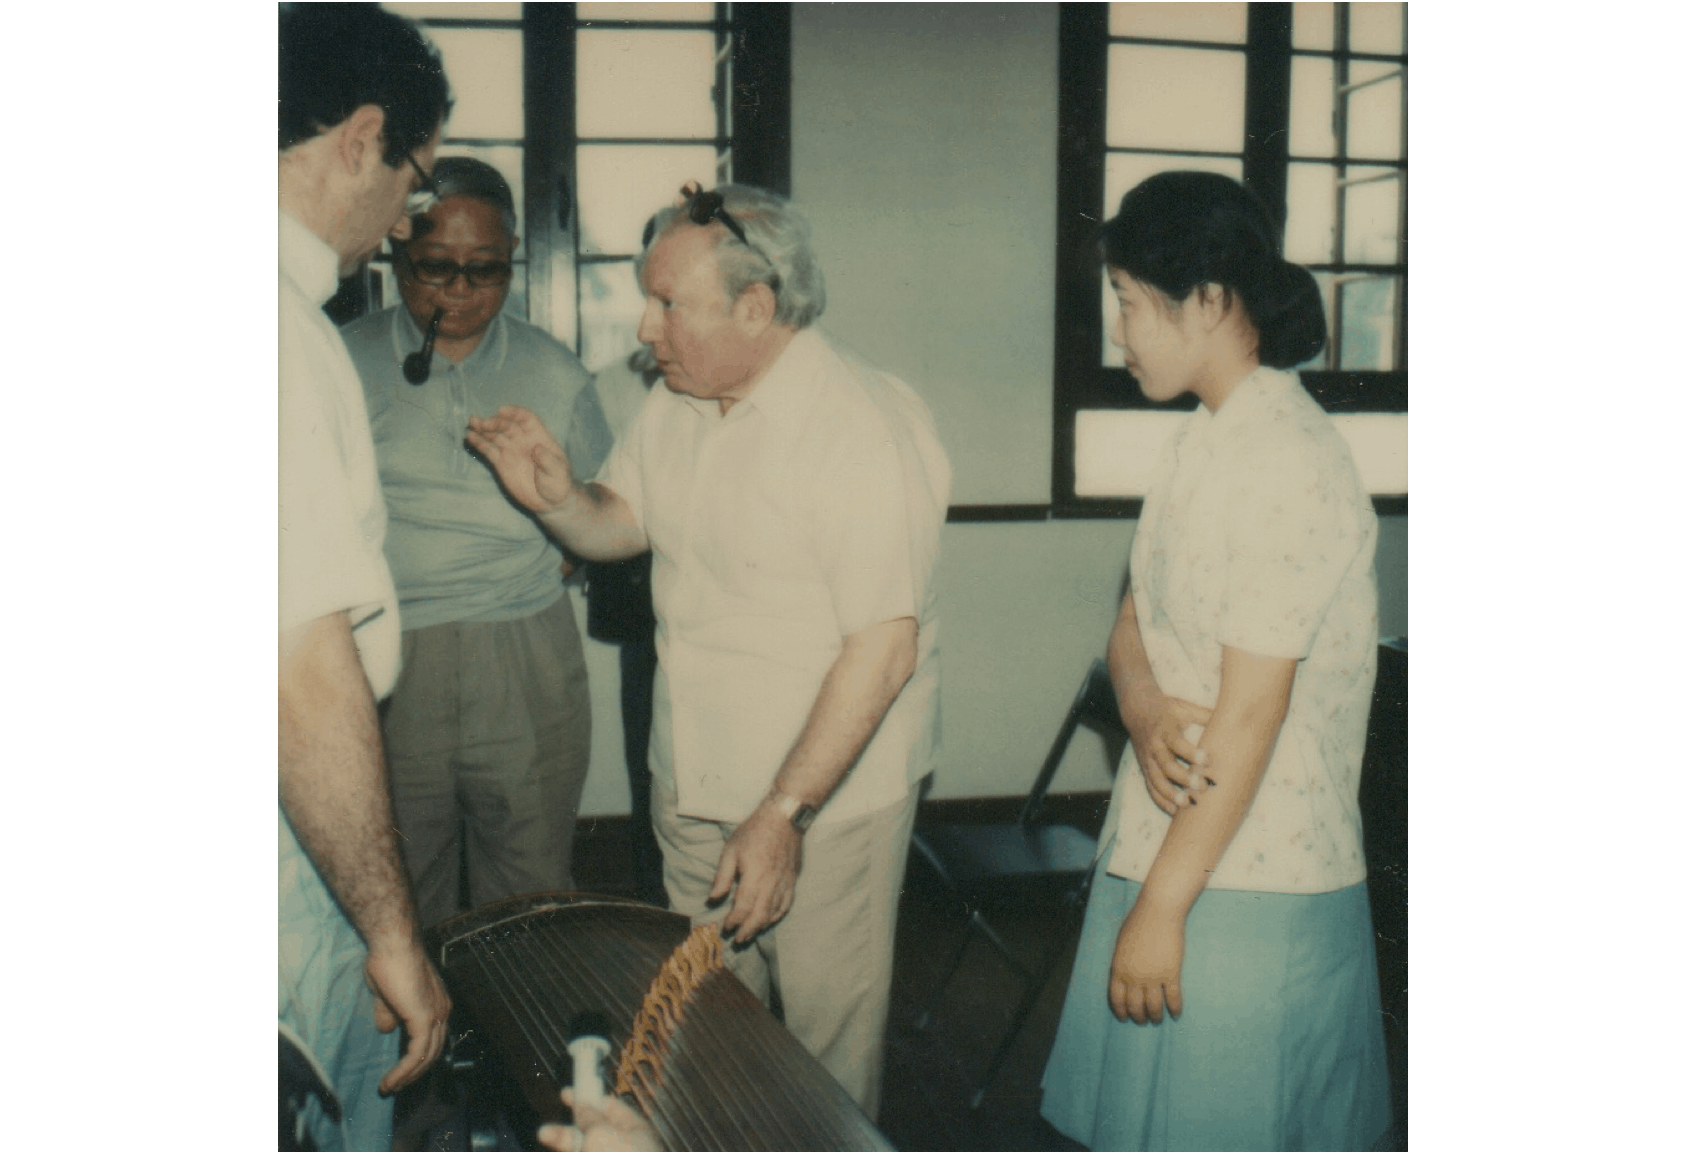 Isaac Stern and David Golub at the Central Conservatory of Music in Beijing